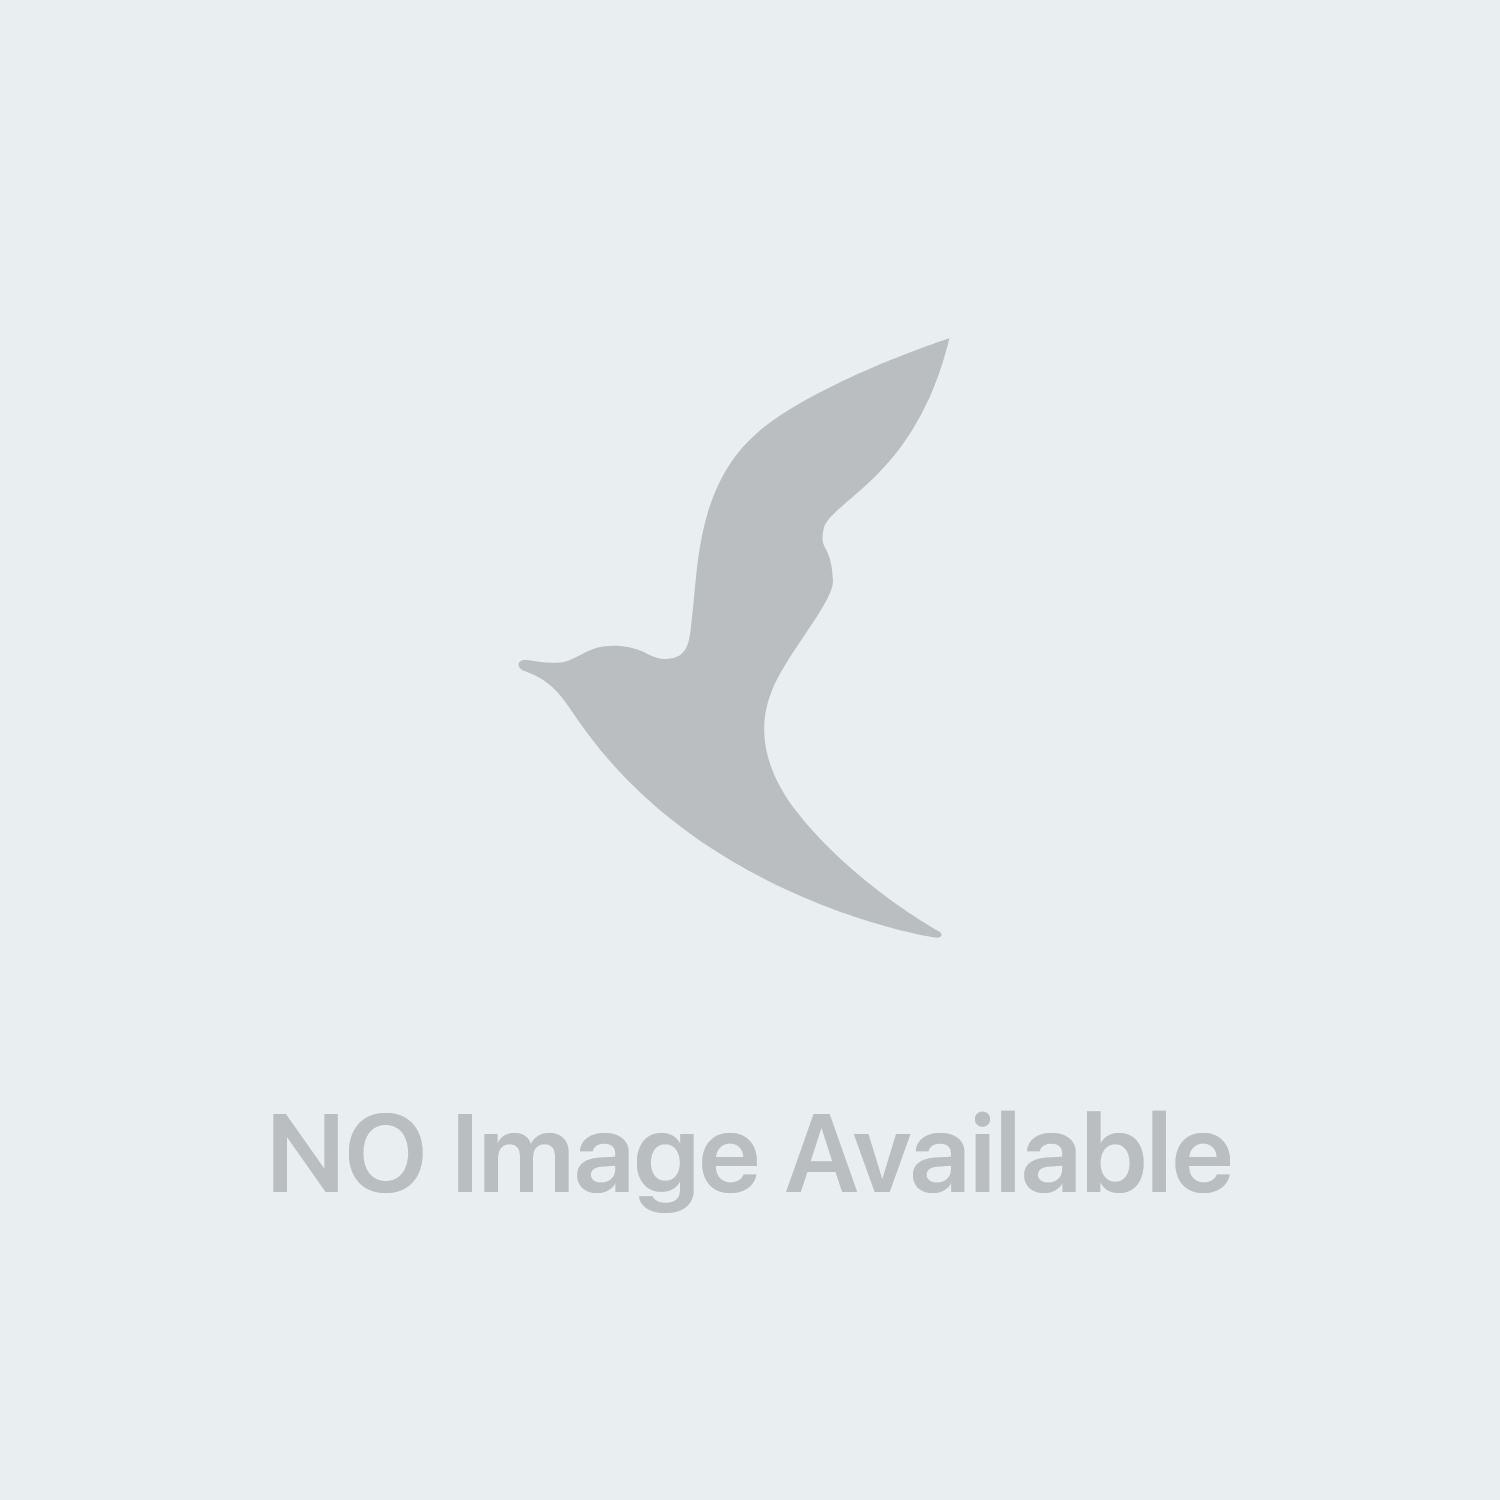 Fluental Adulti 10 Supposte 500 mg + 200 mg